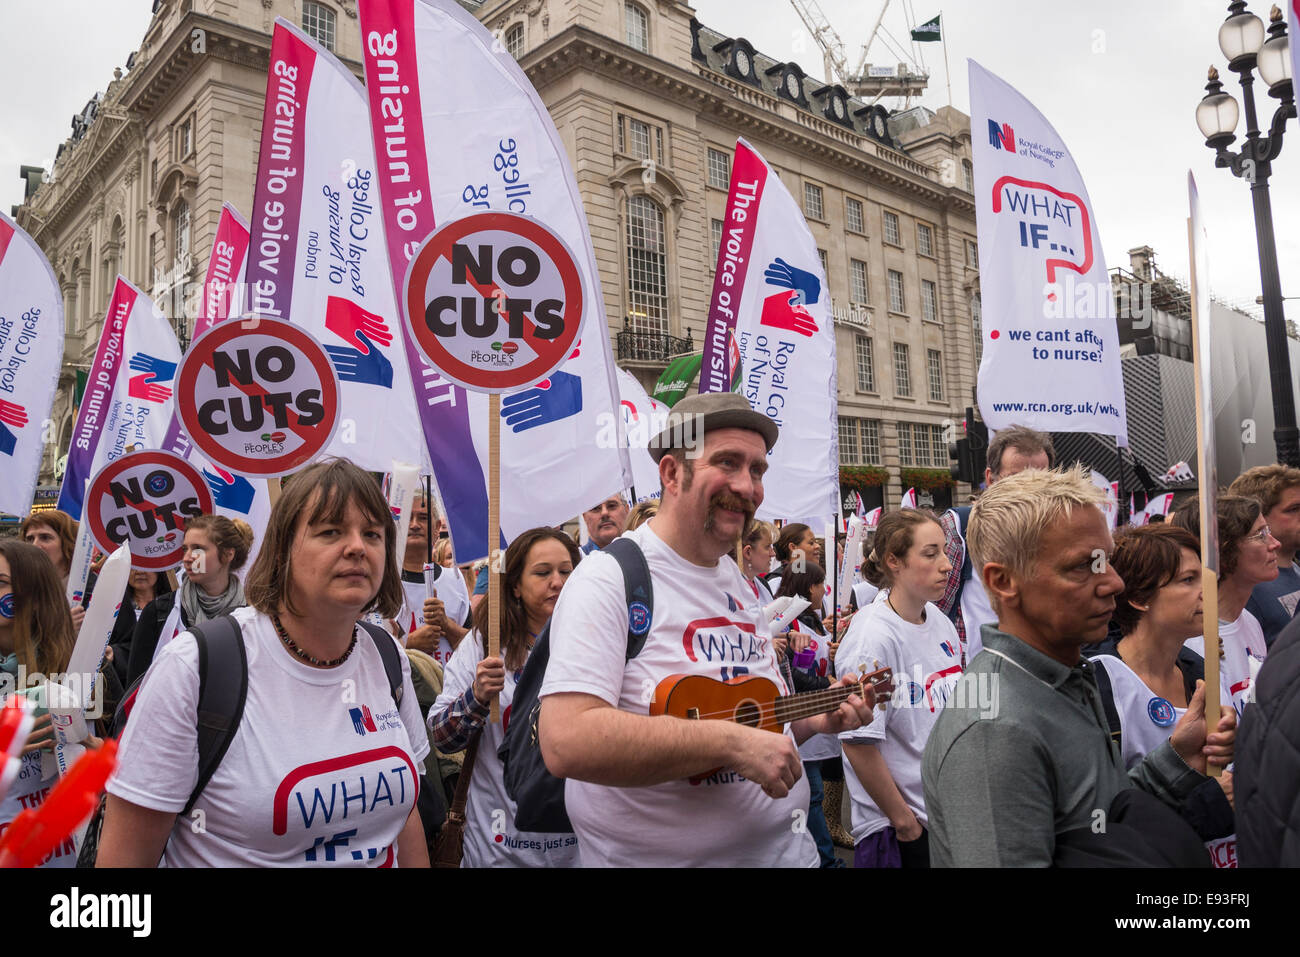 Nurses carrying Royal College of Nursing flags and No Cuts placards, Britain Needs a Pay Rise march, London, 18 - Stock Image